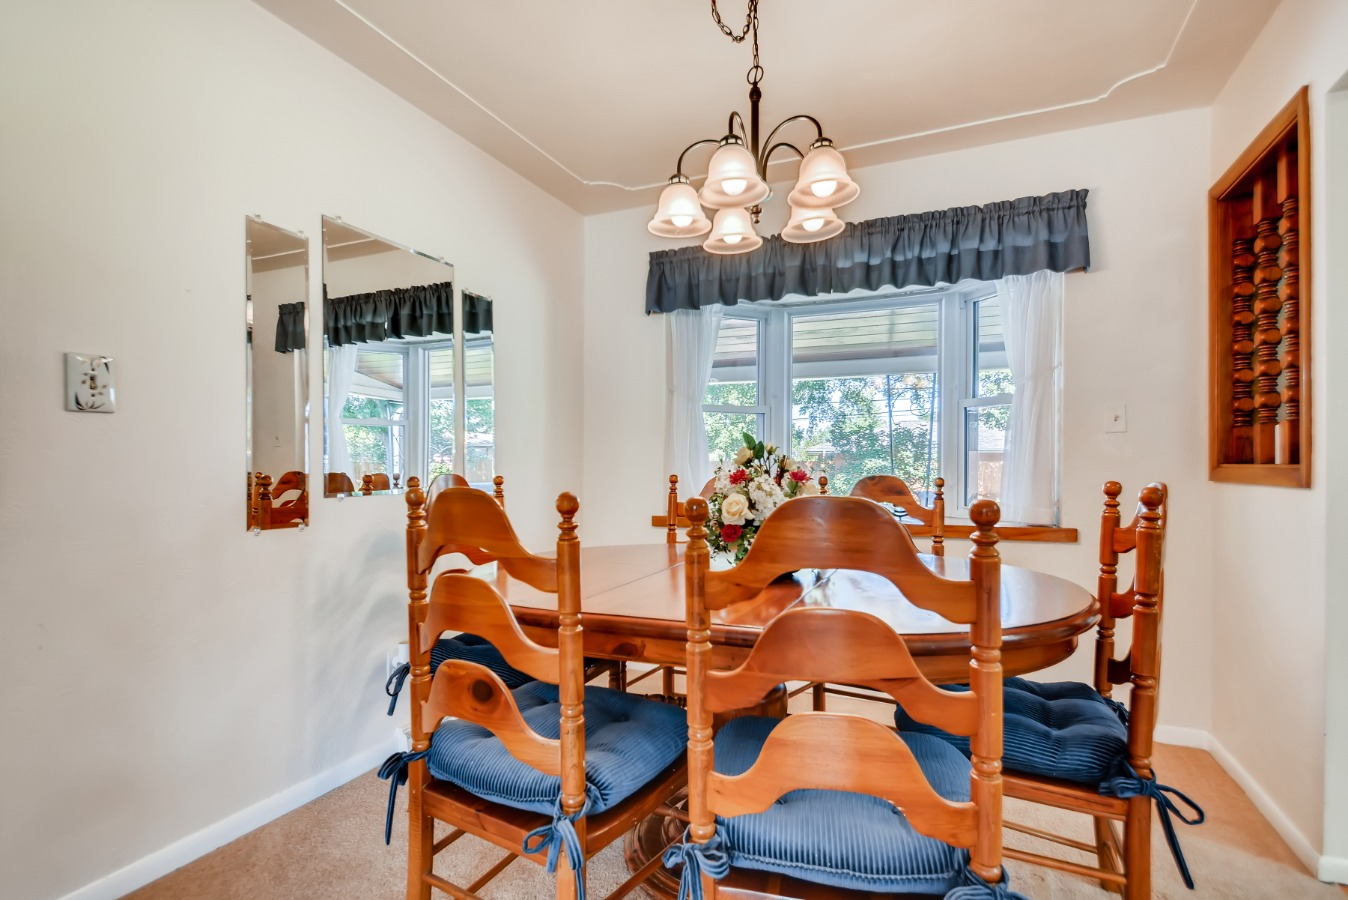 Expandable Dining Room for 2 or 20